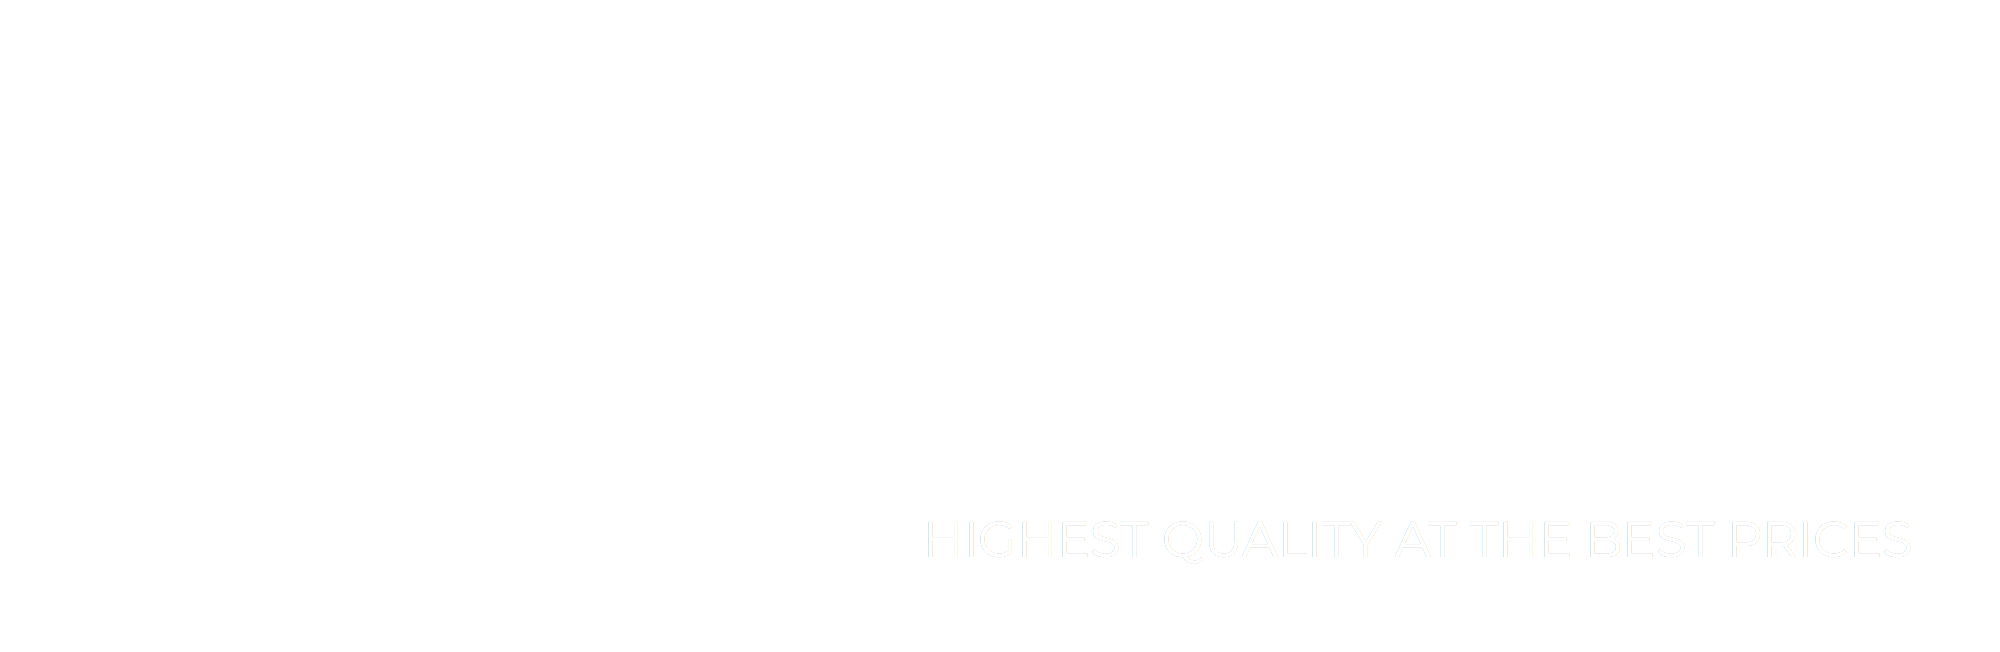 MADE IN GREAT BRITAIN-logo-white.png